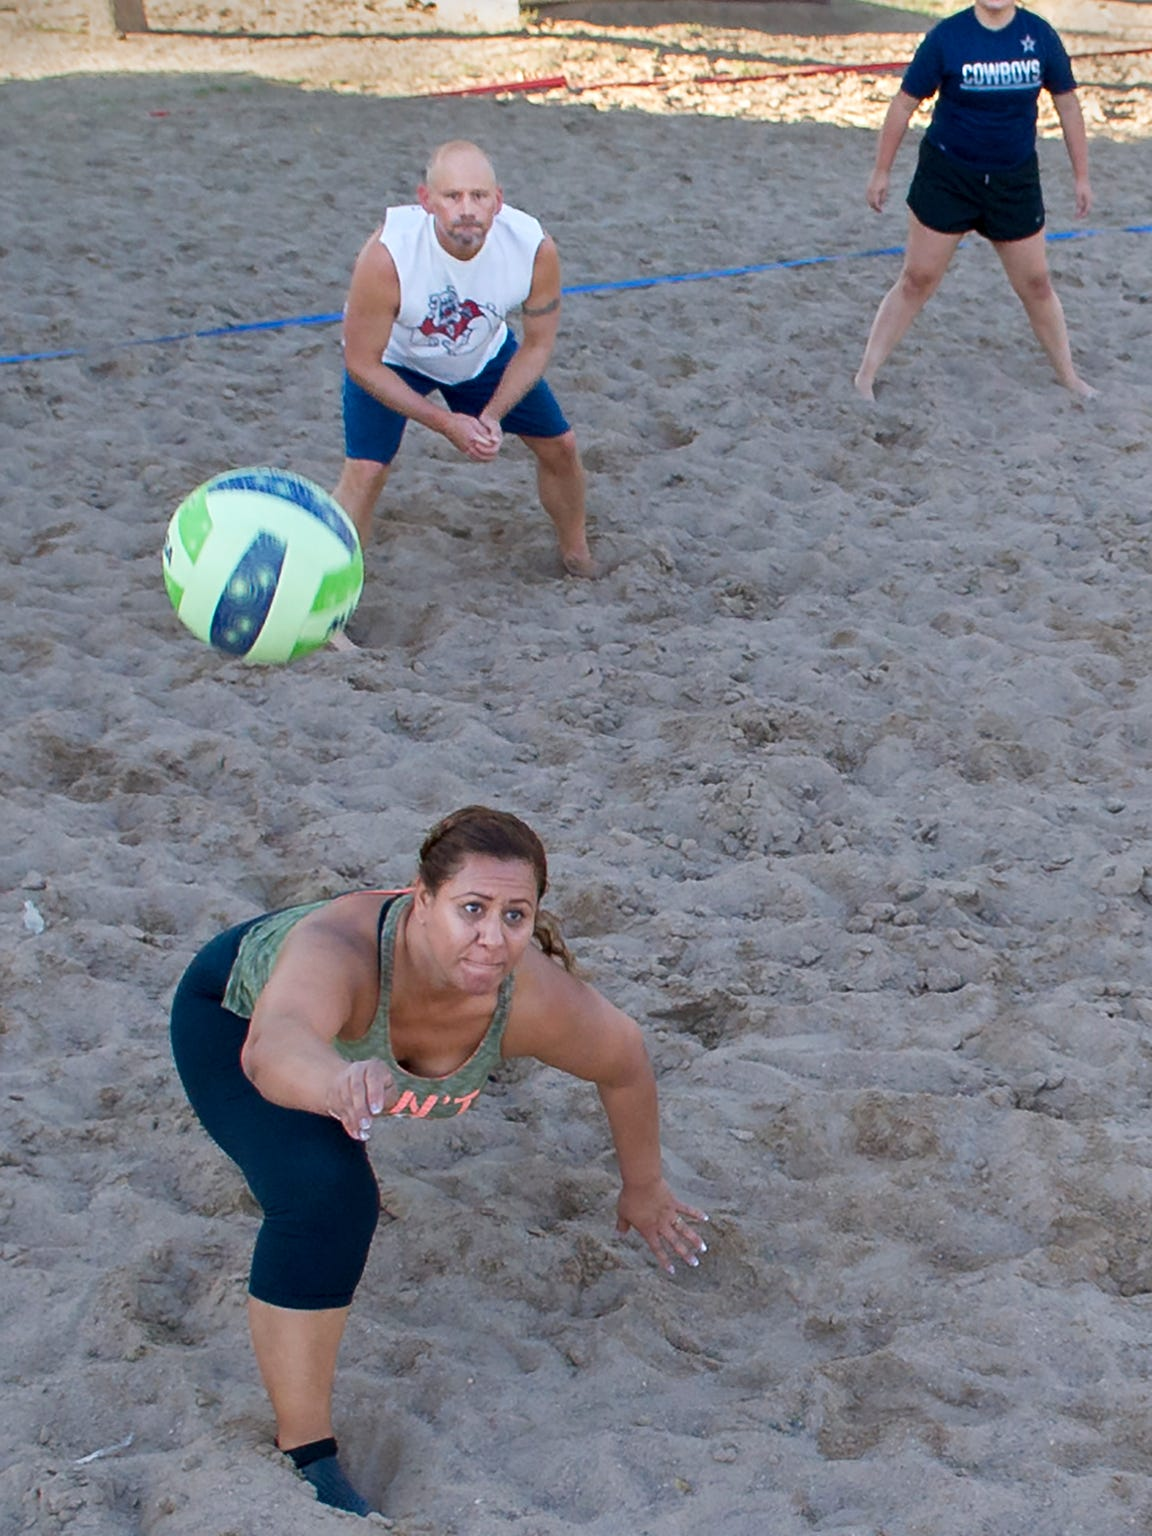 Eva Ortega gets a nice dig on the ball during a pickup sand volleyball game Sunday evening at the Meerscheidt Recreation Center.